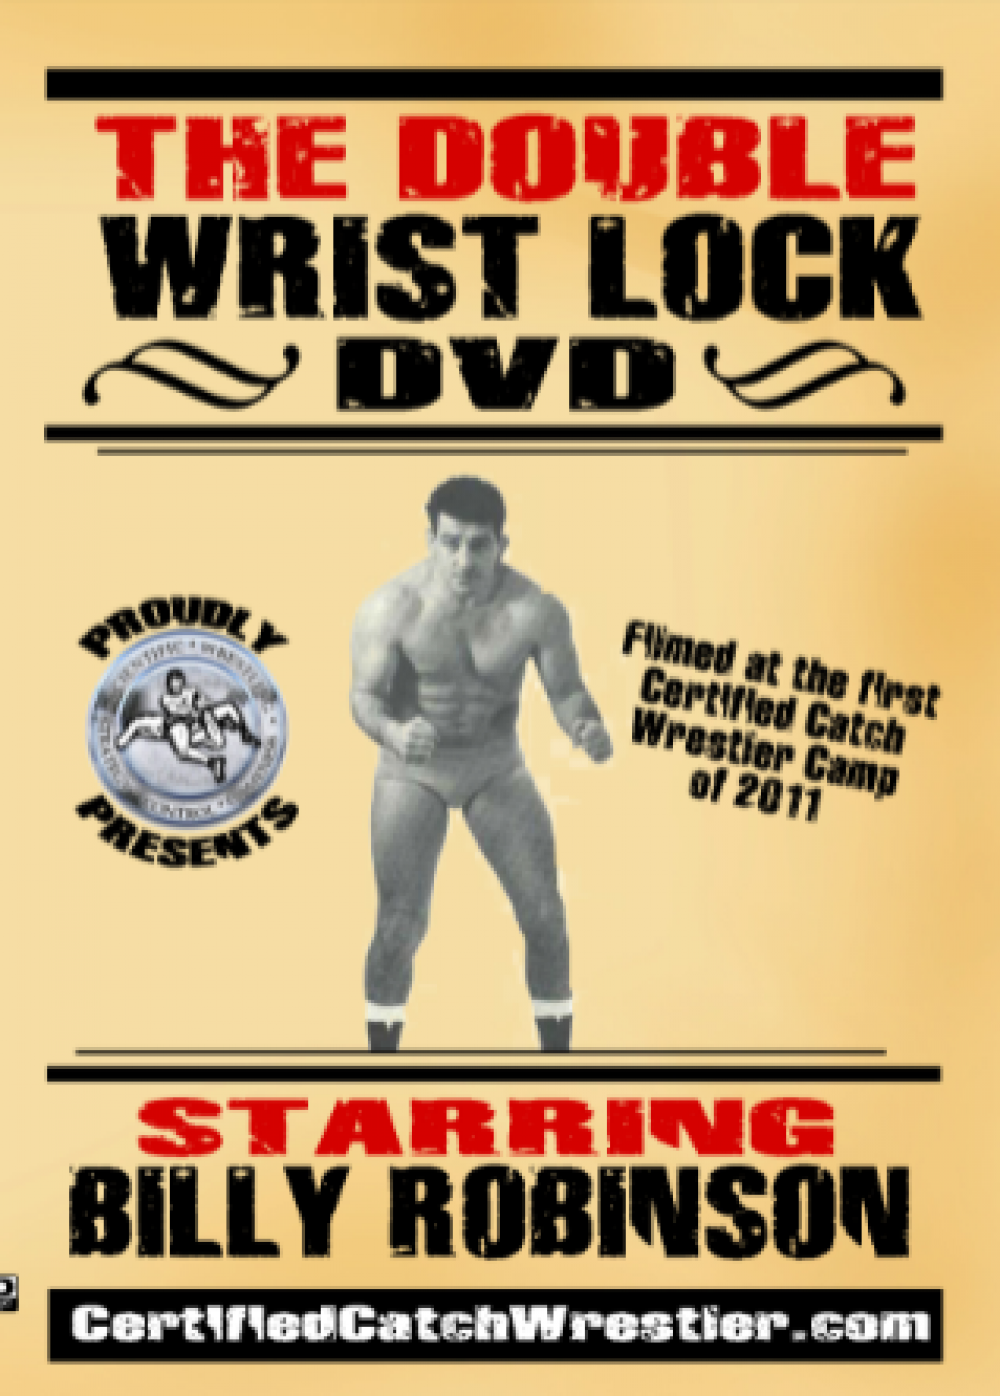 The Double Wrist Lock DVD